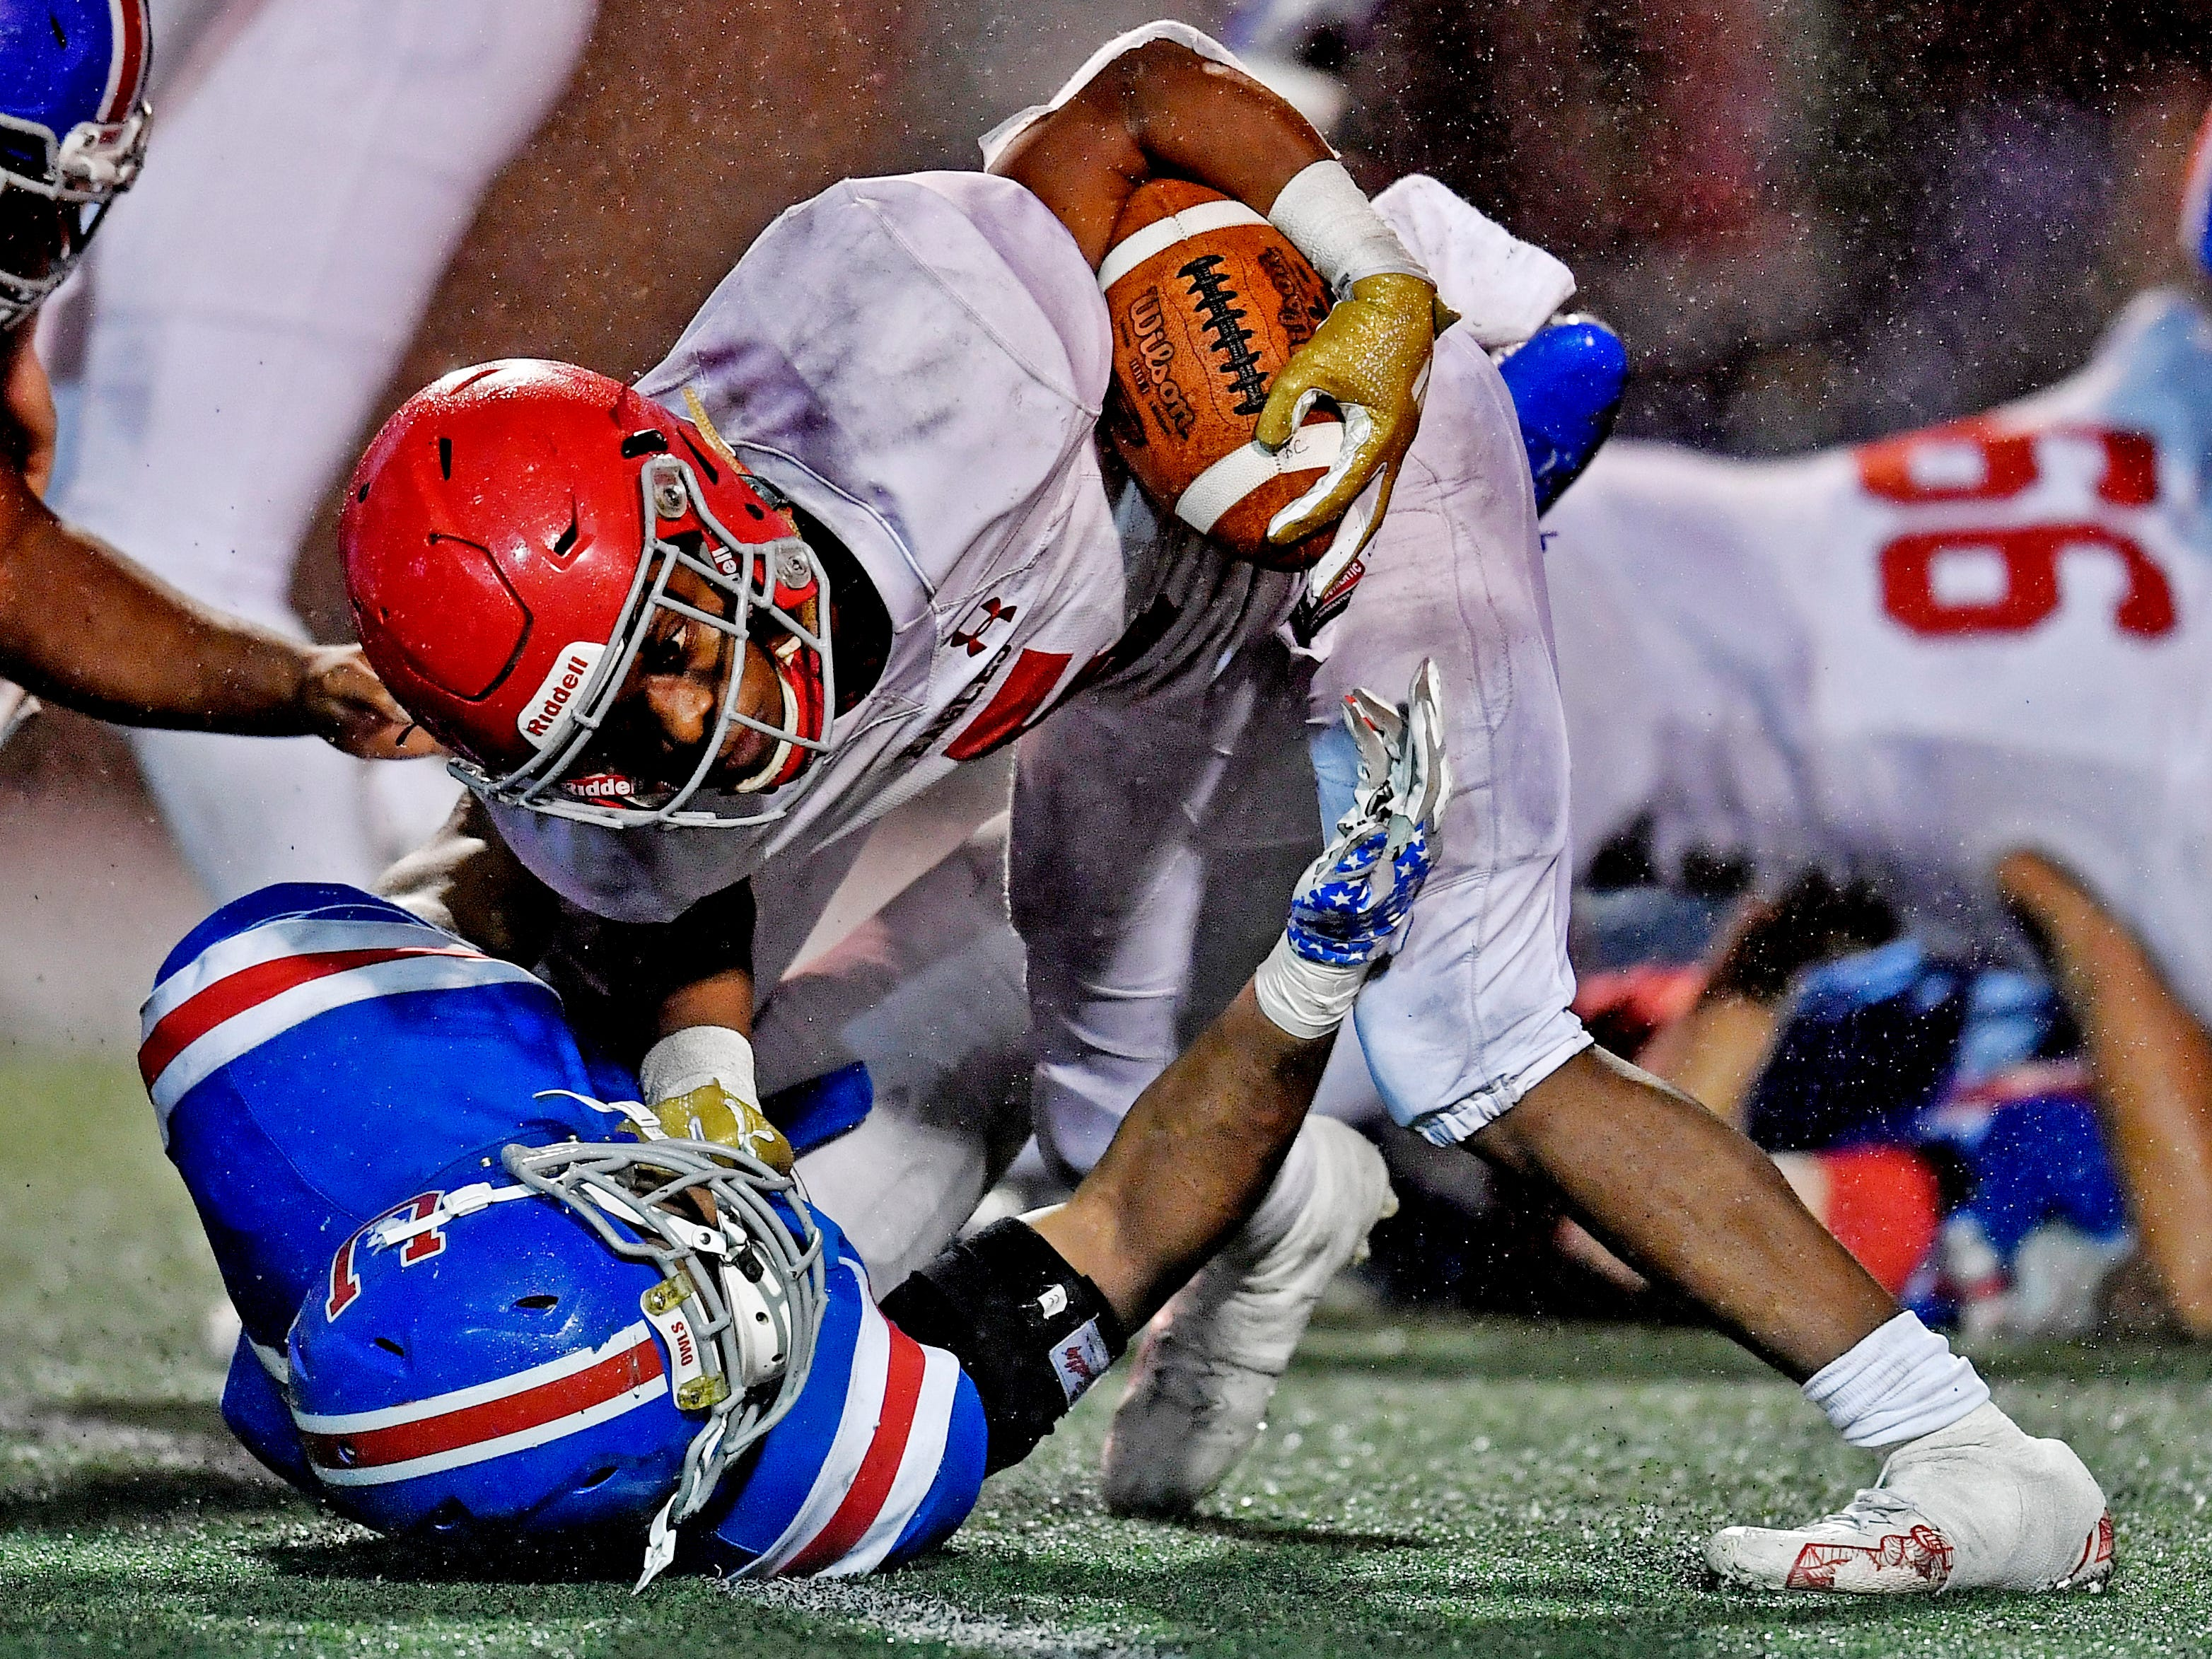 Brentwood Academy running back Tomario Pleasant (5)breaks a MUS tackle in the third quarter at the Division II-AAA BlueCross Bowl state championship at Tennessee Tech's Tucker Stadium in Cookeville, Tenn., on Friday, Nov. 30, 2018.